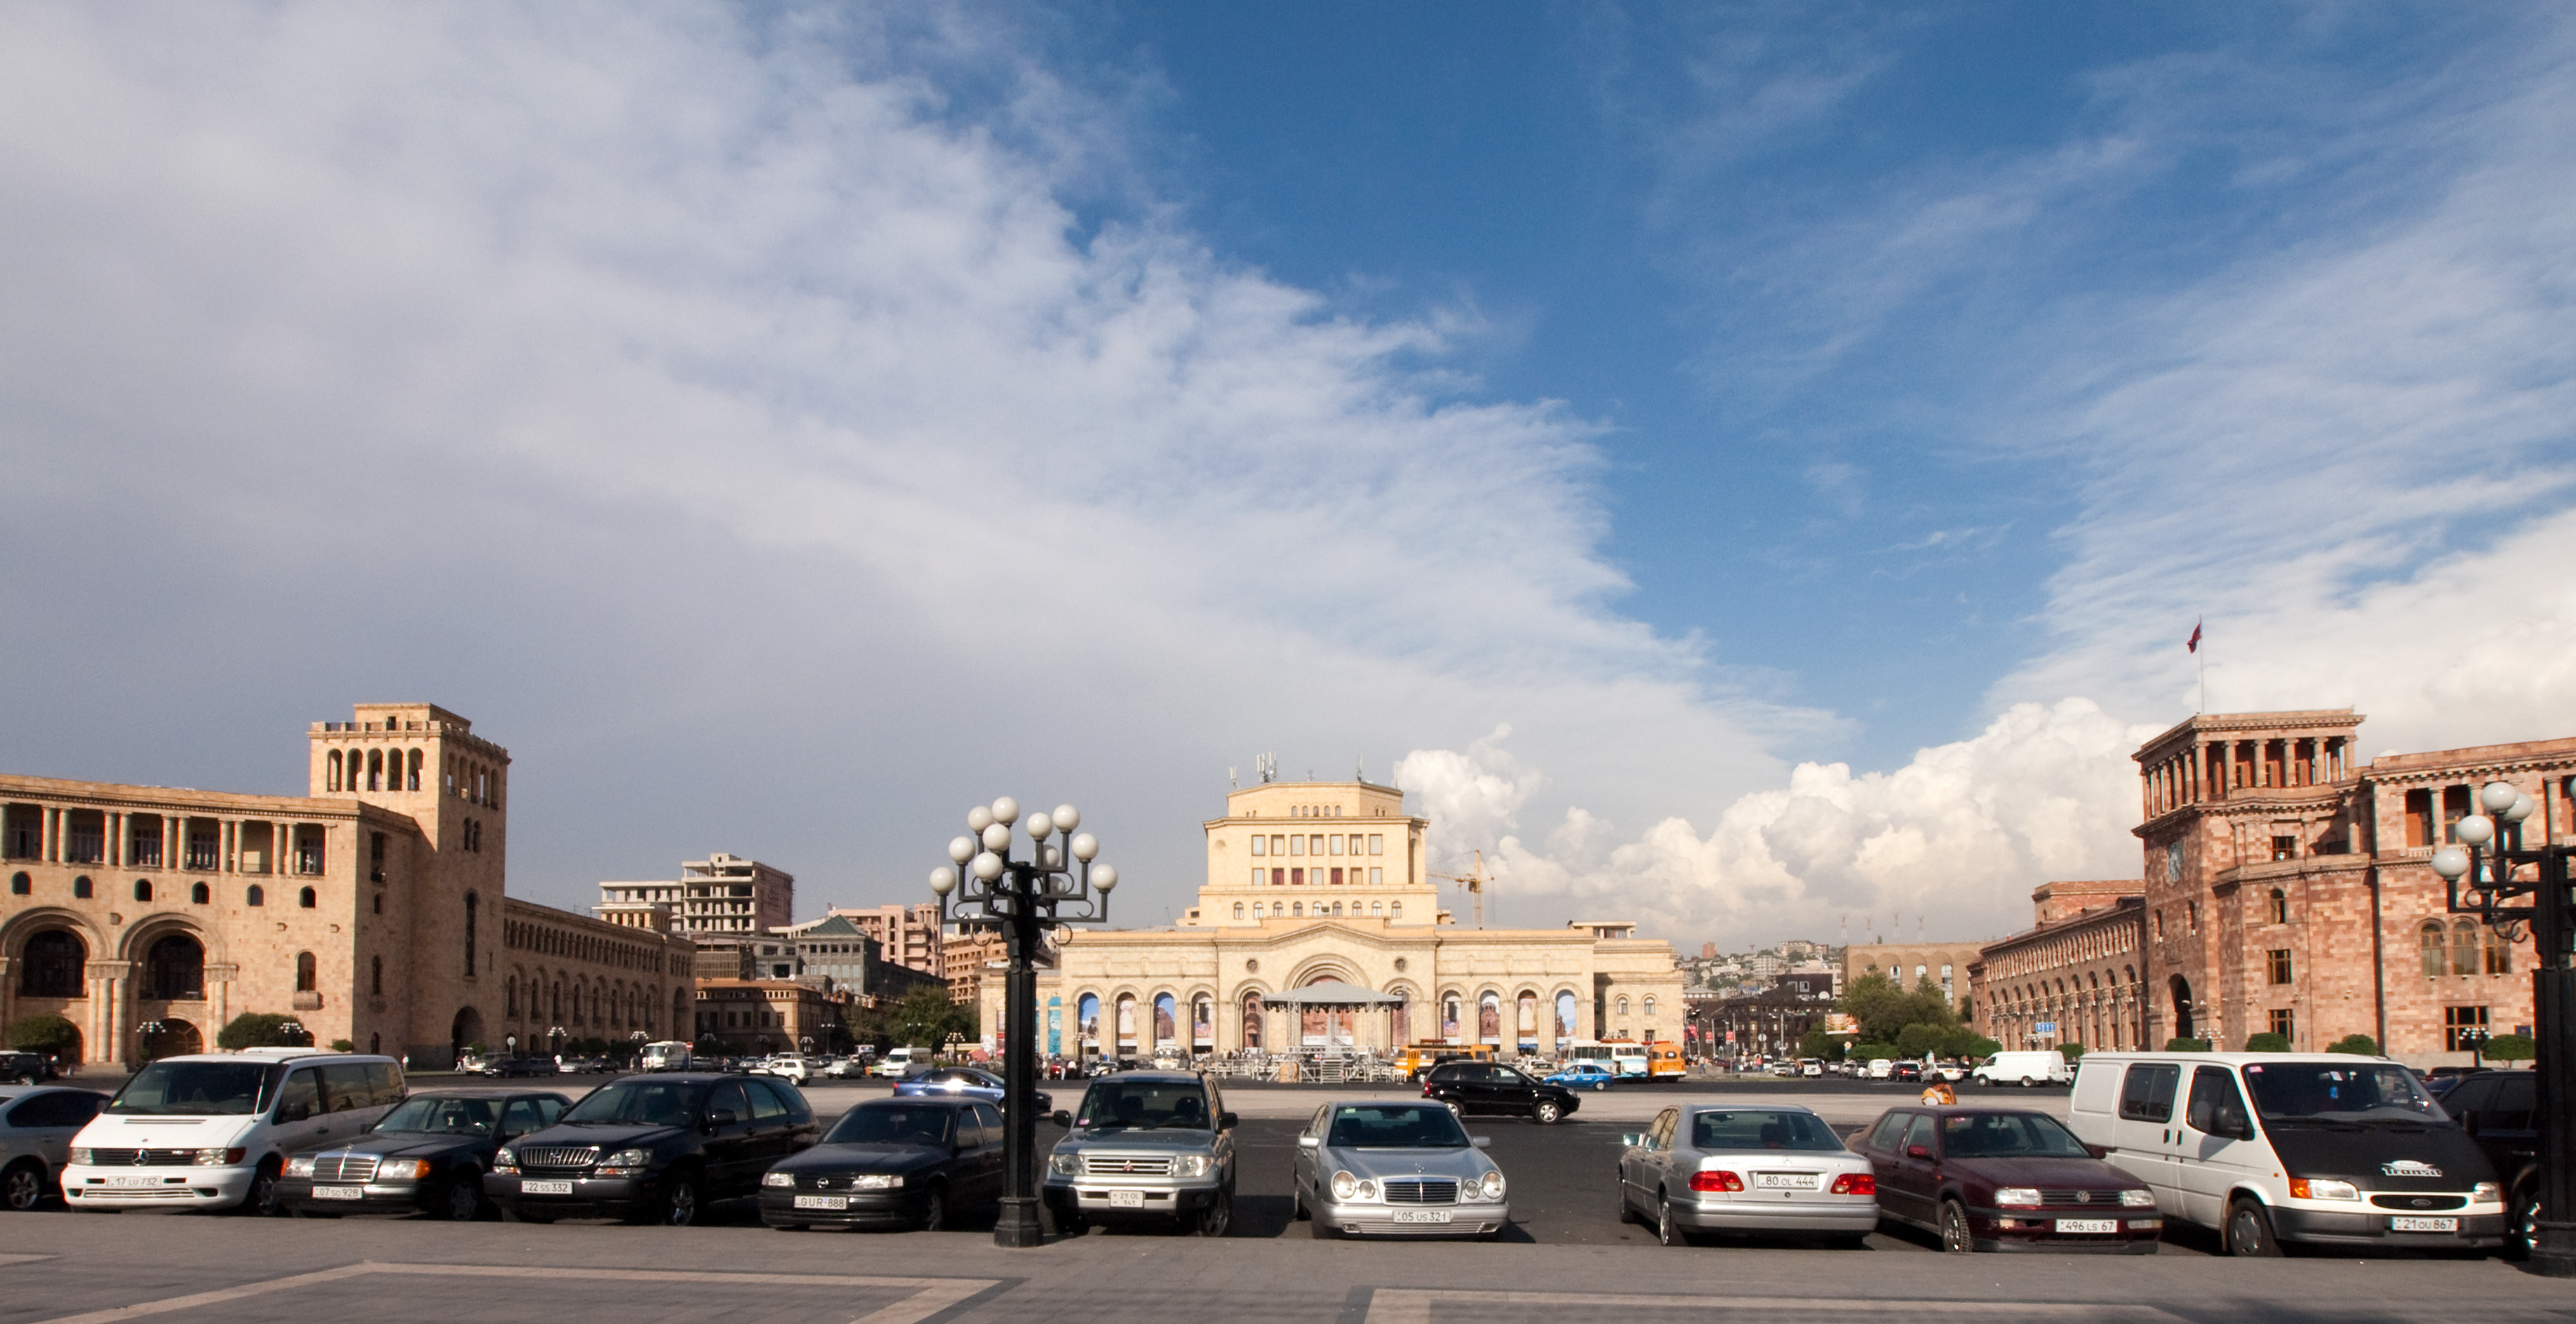 Armenia – Soviet Armenia - The Republic Square in Yerevan